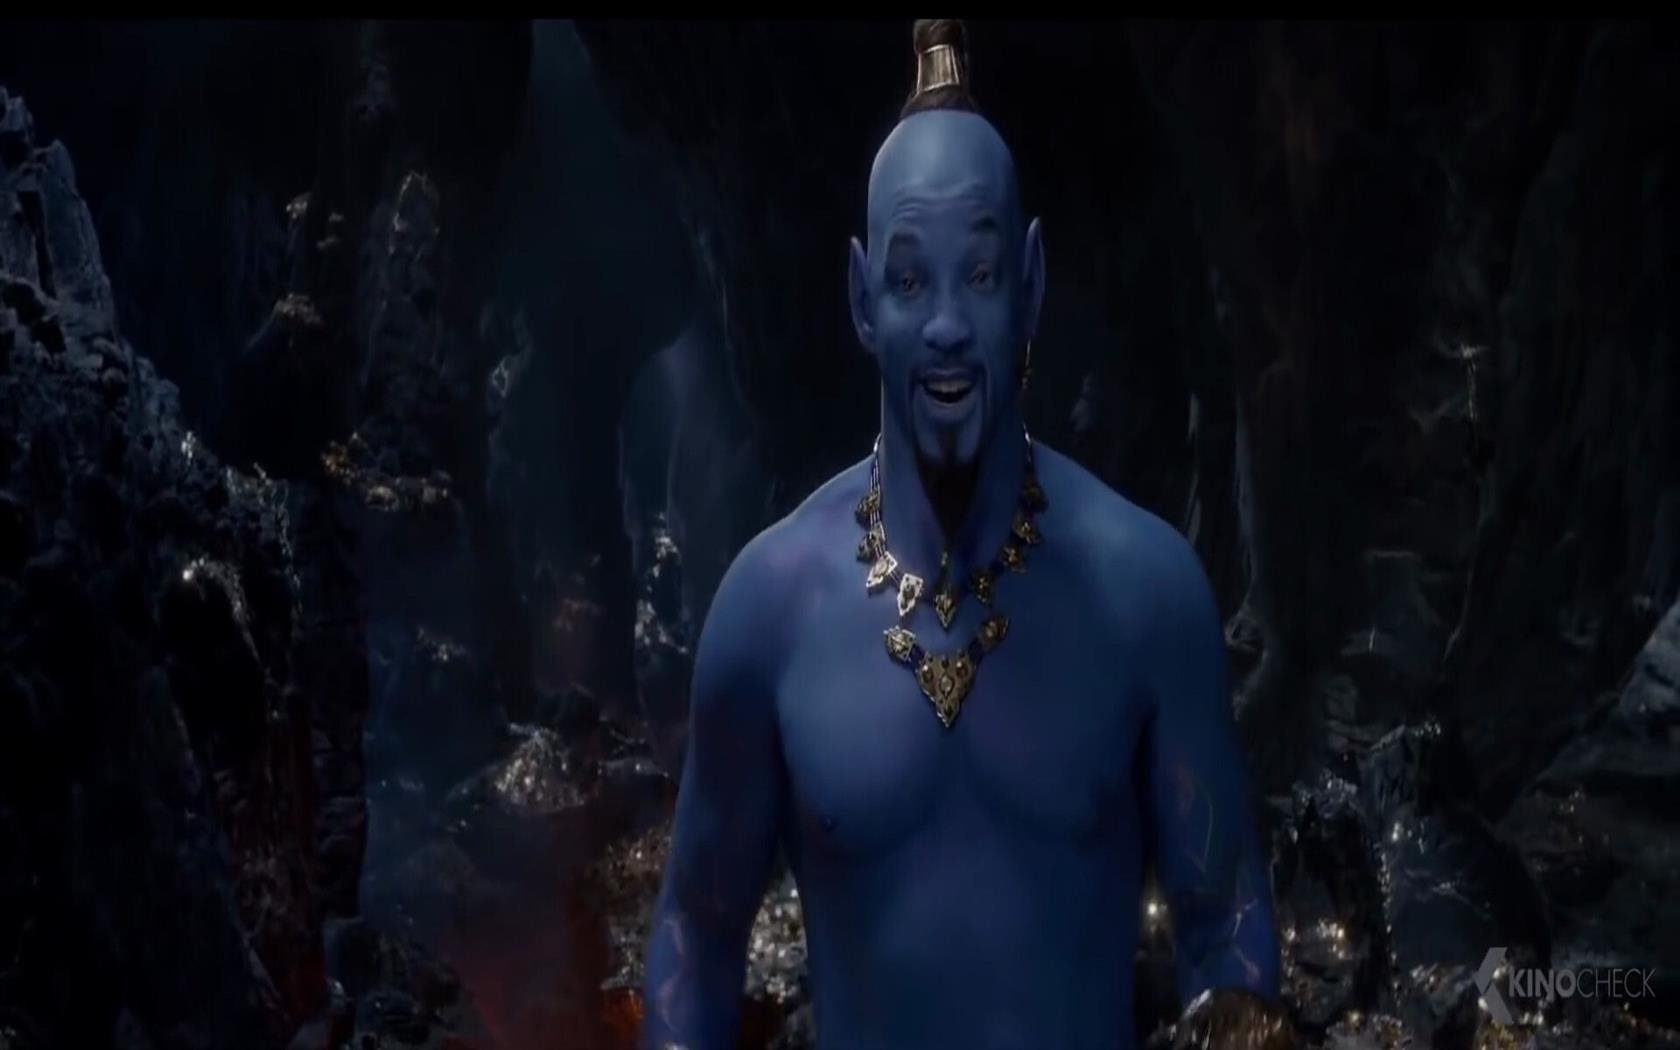 1680x1050 Will Smith as Genie in 2019 Film Aladdin